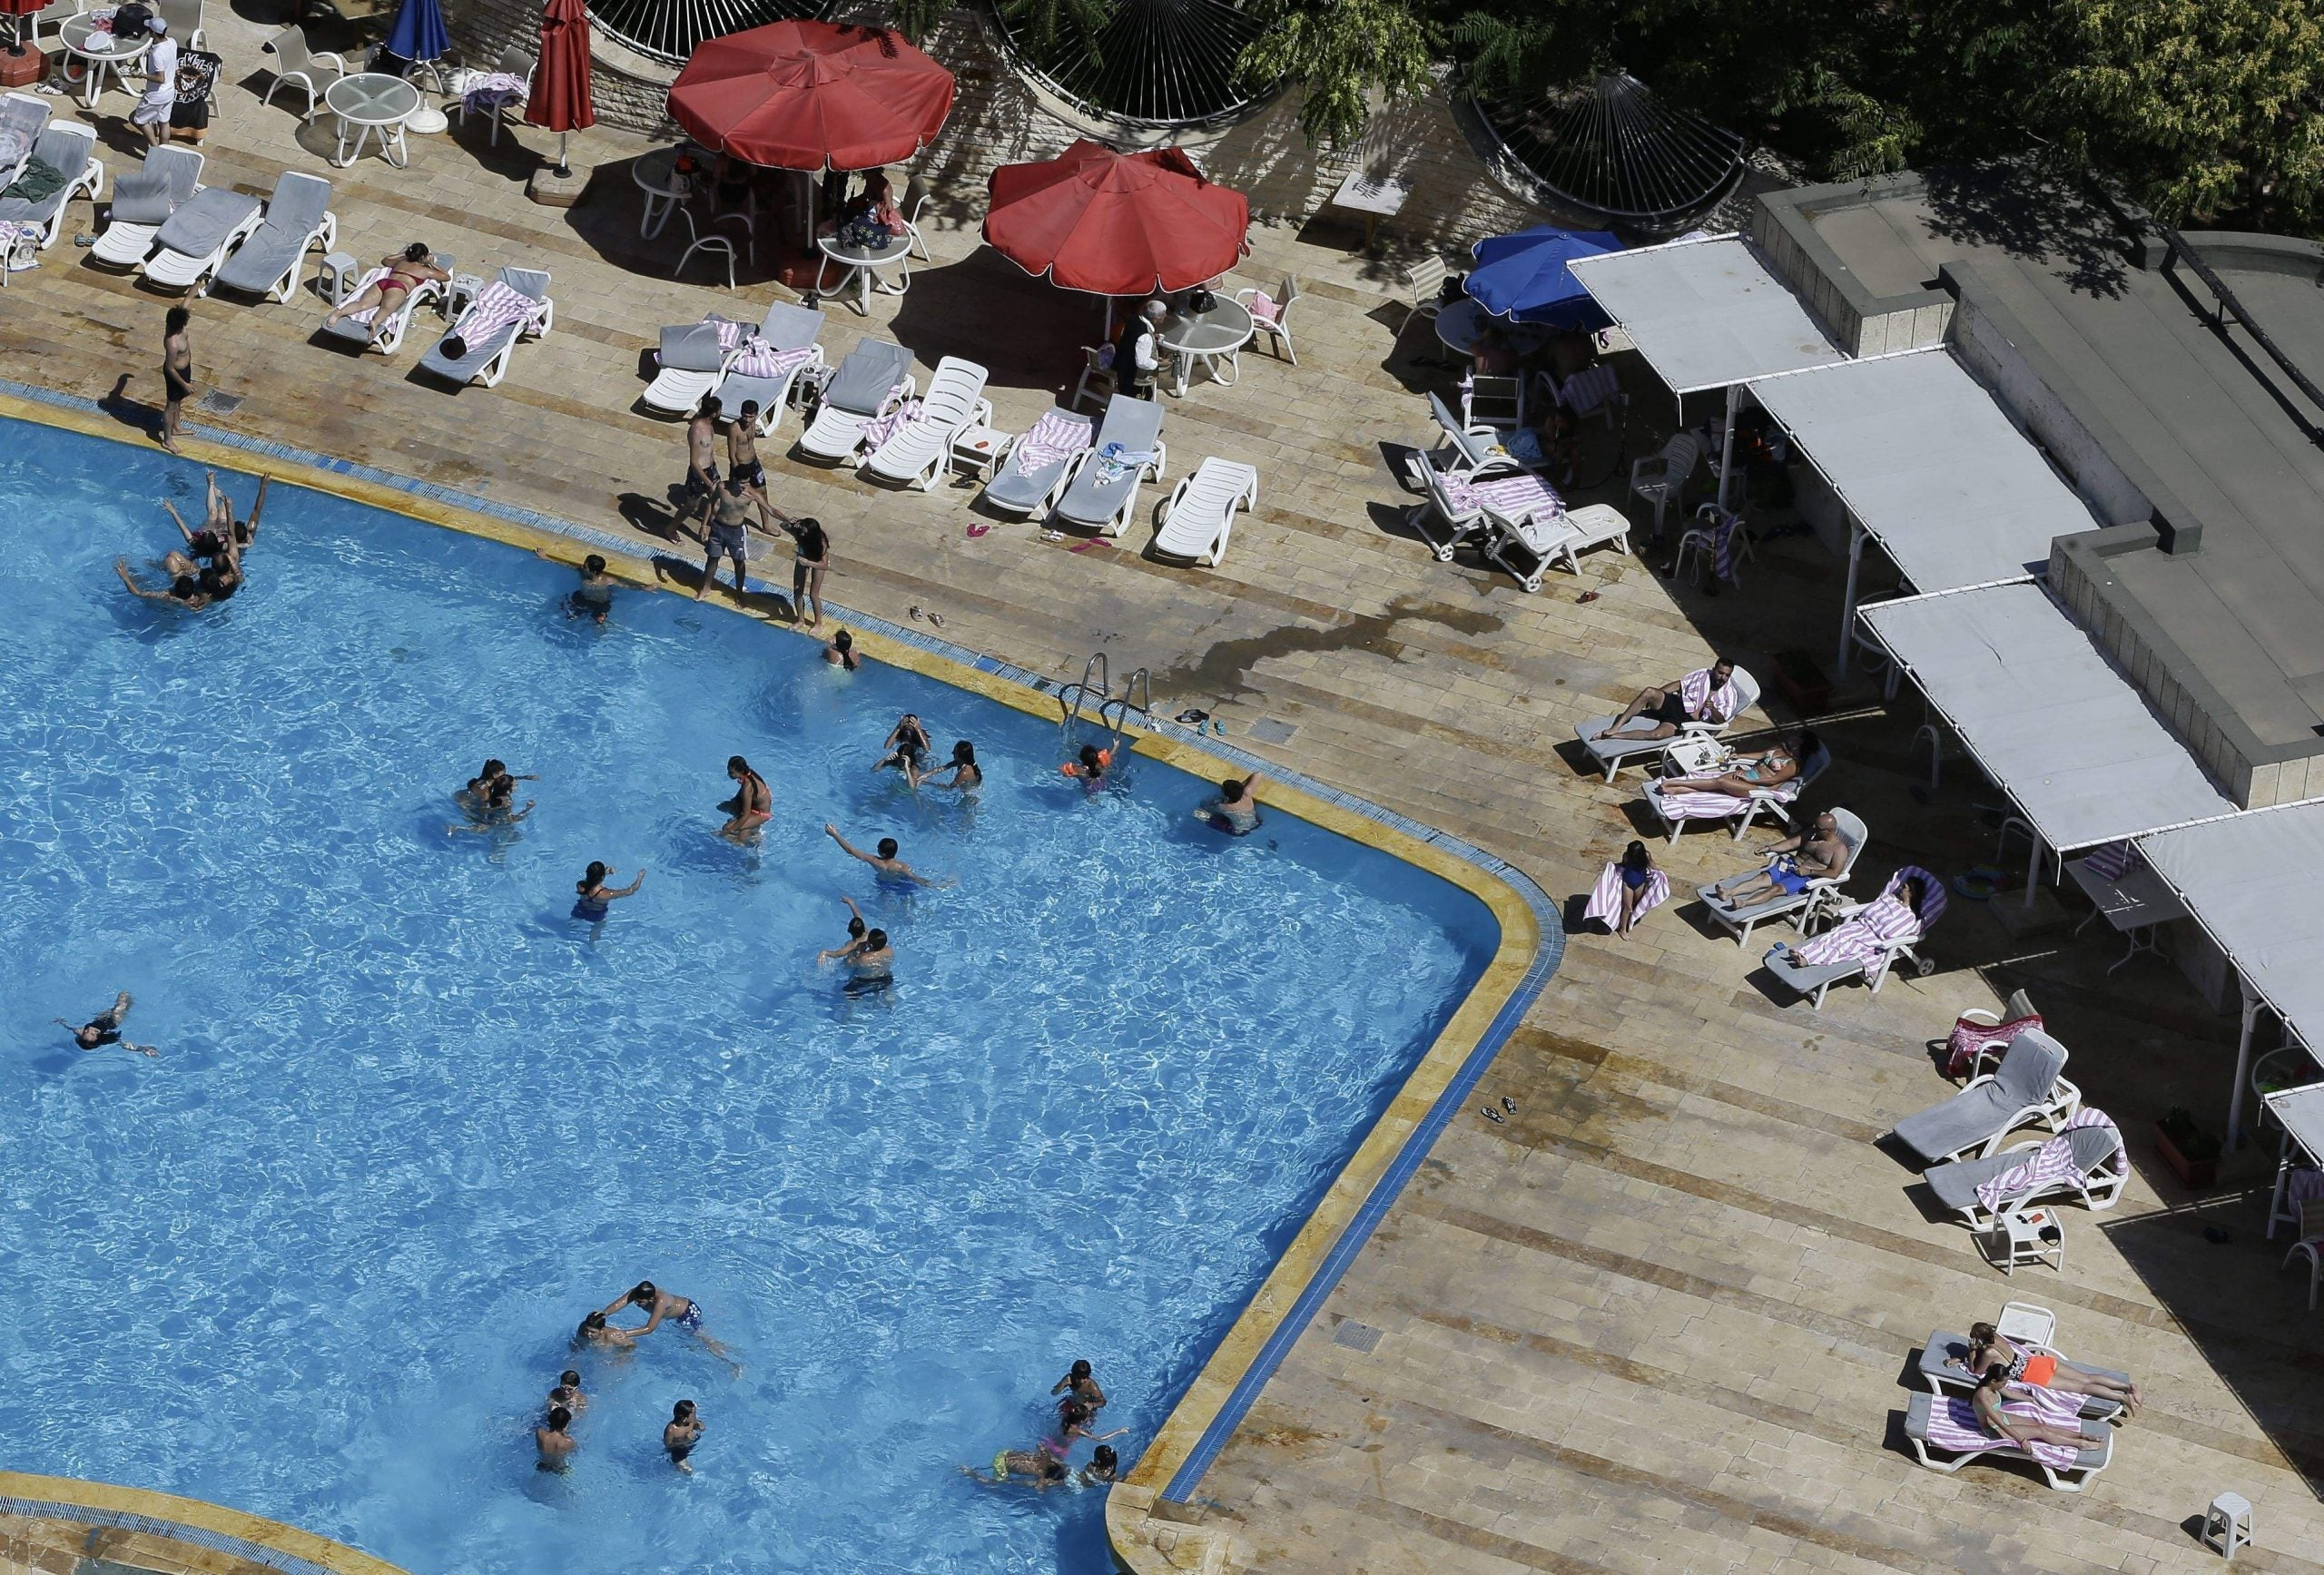 Swimming in Aleppo: why people still head to the pool in war zones